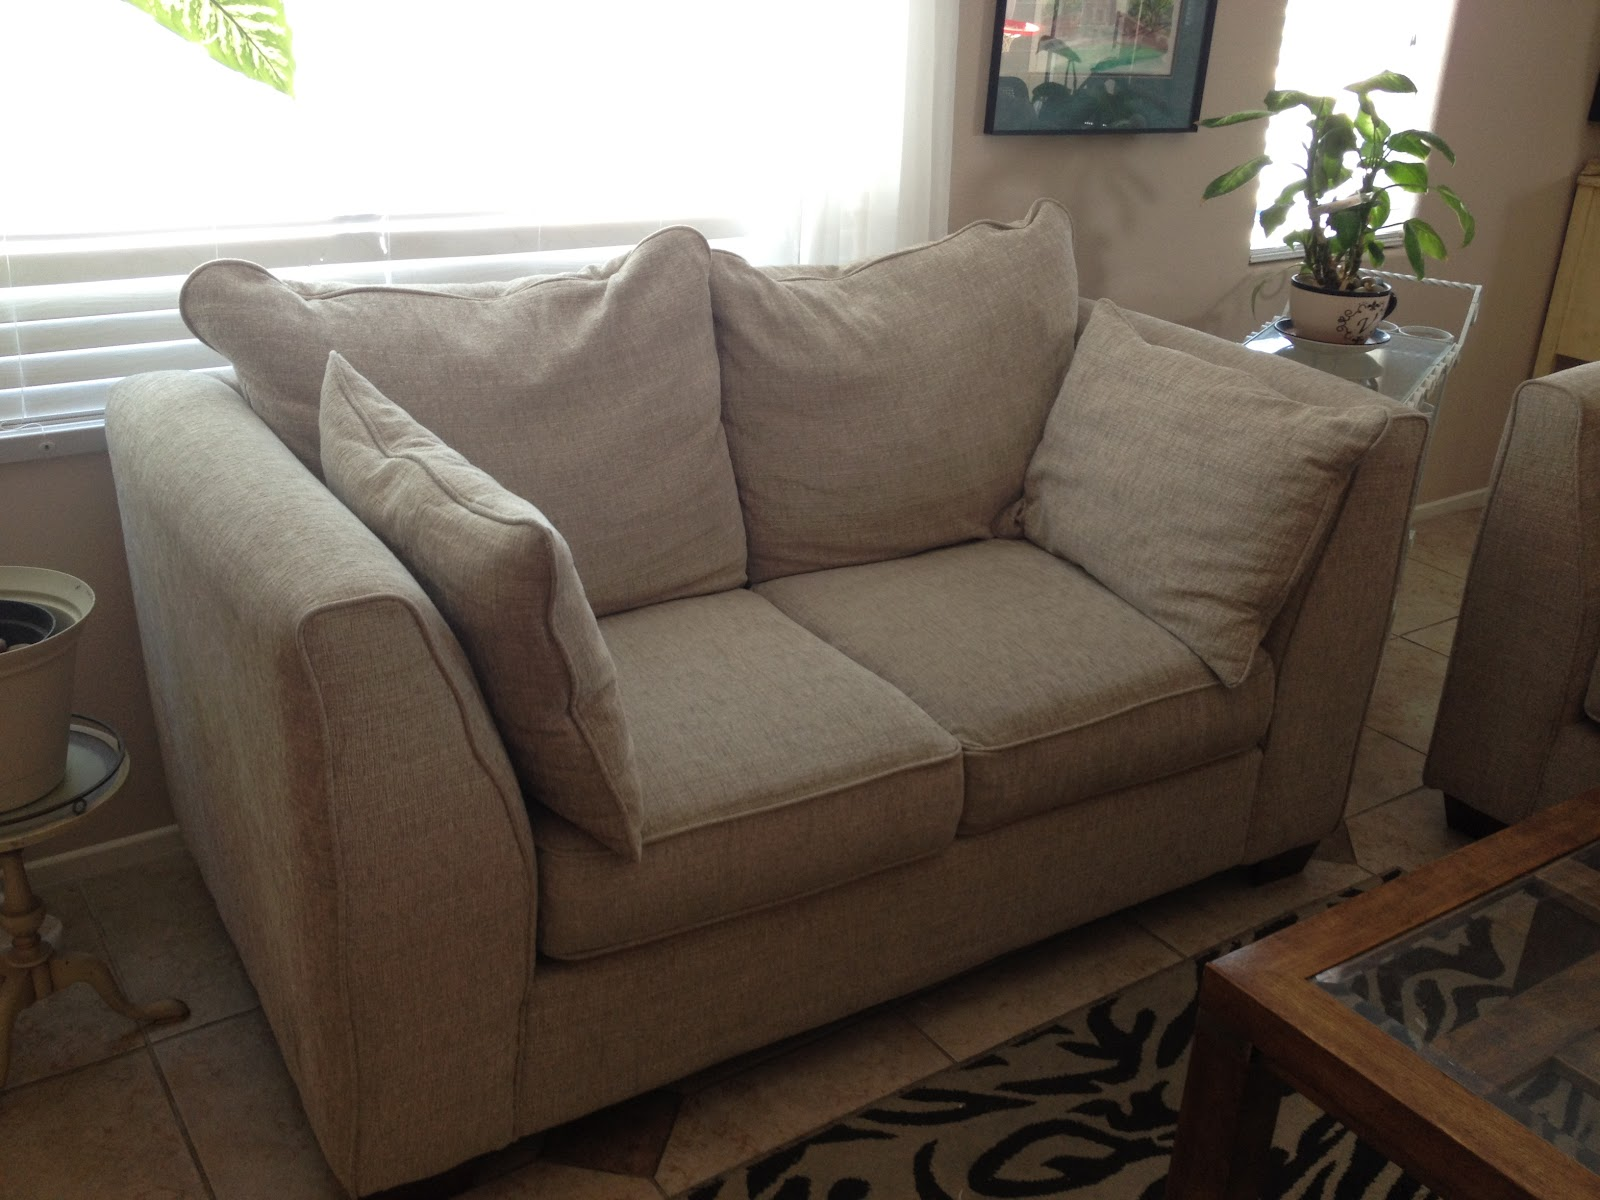 moving to Idaho sale!: great couches!